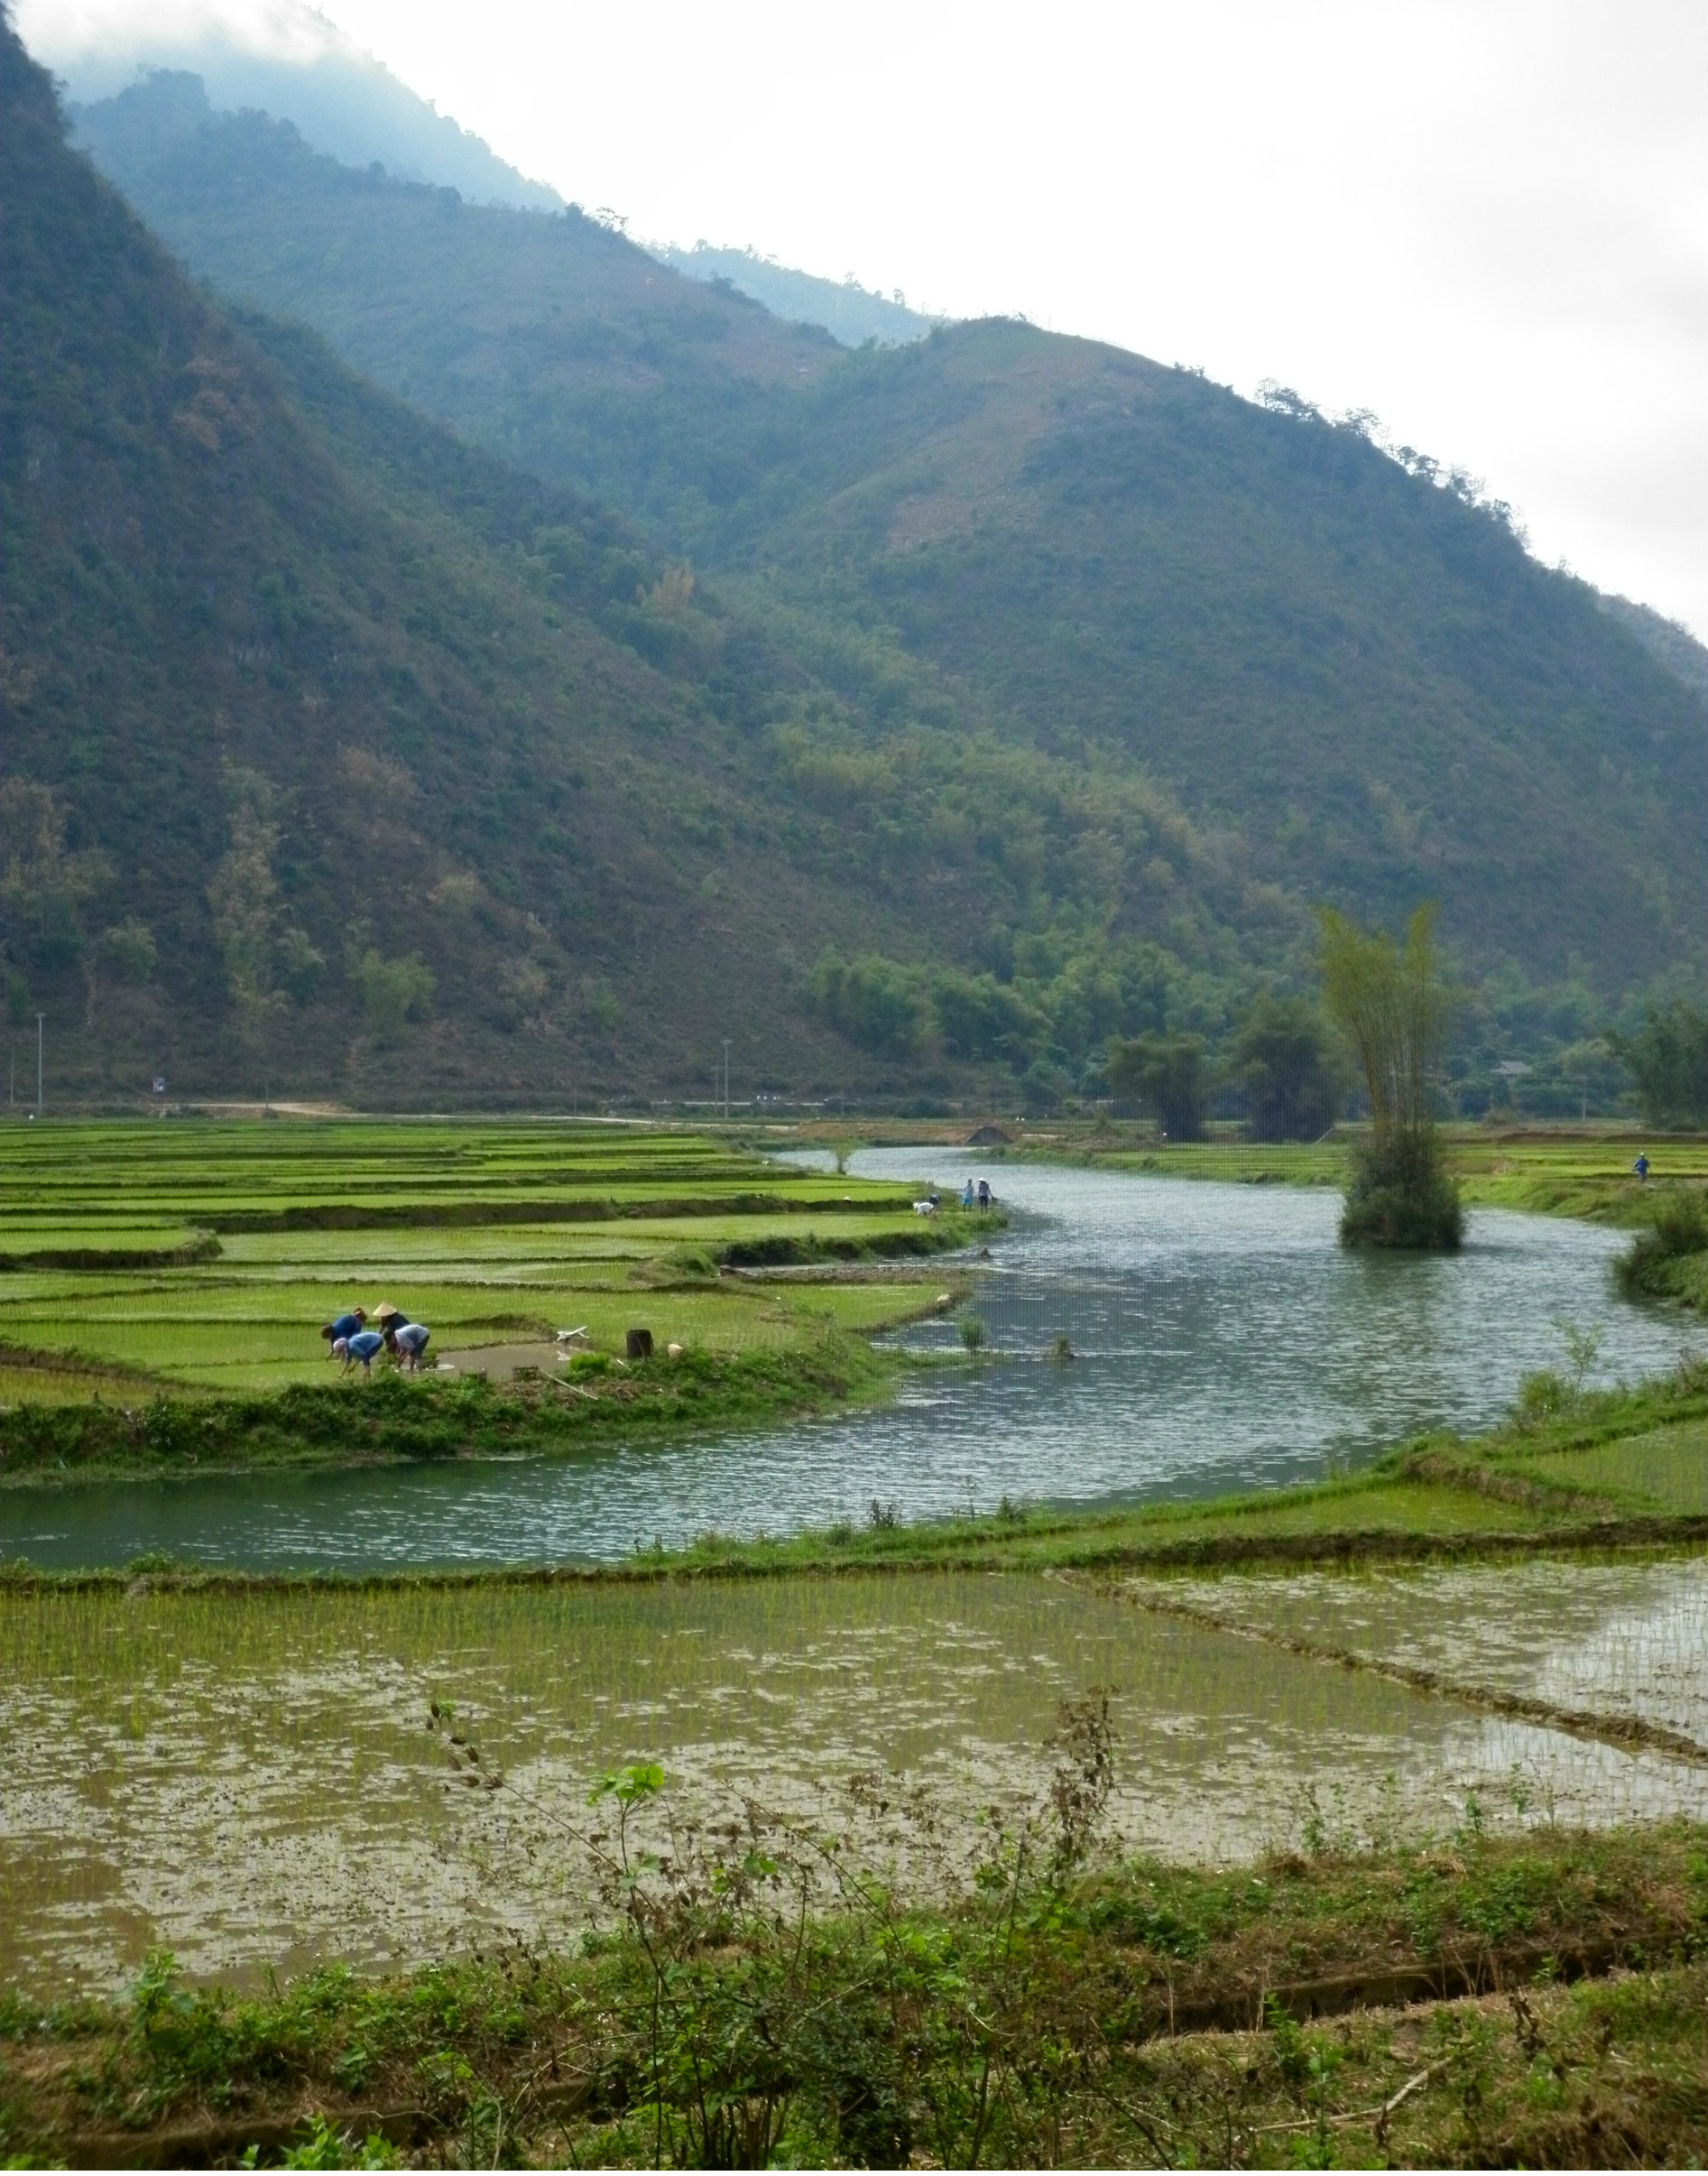 The Ma River running through the valley in Mai Chau in Northwest Vietnam.